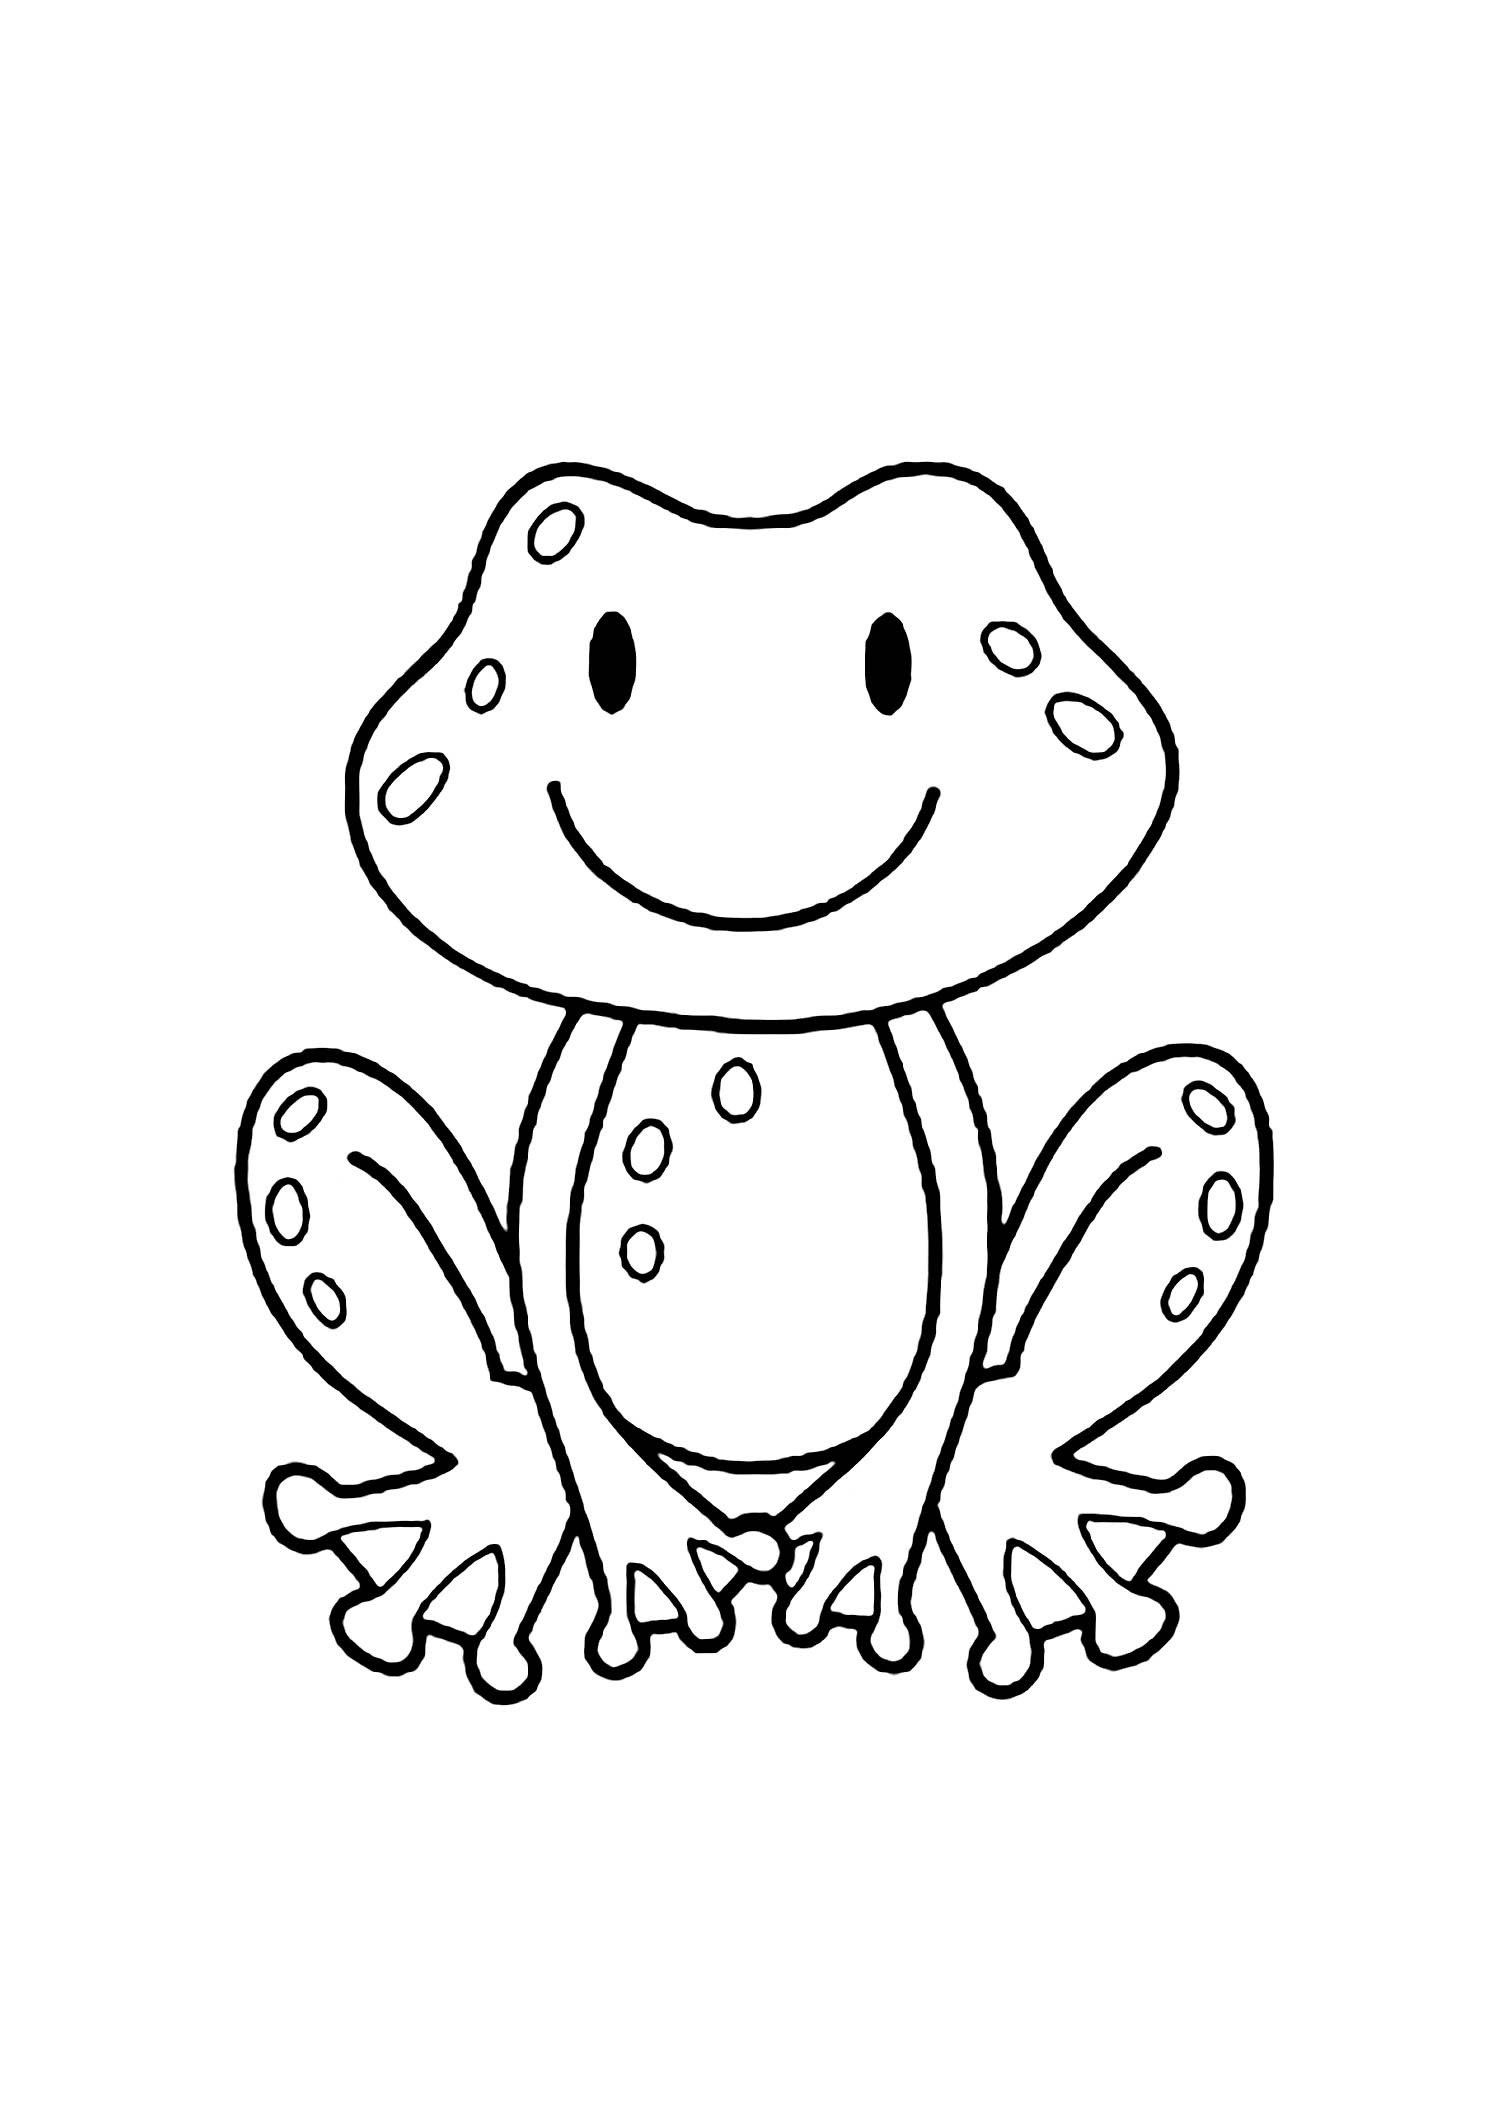 Simple Coloring Page for Kid Frogs to Color for Children